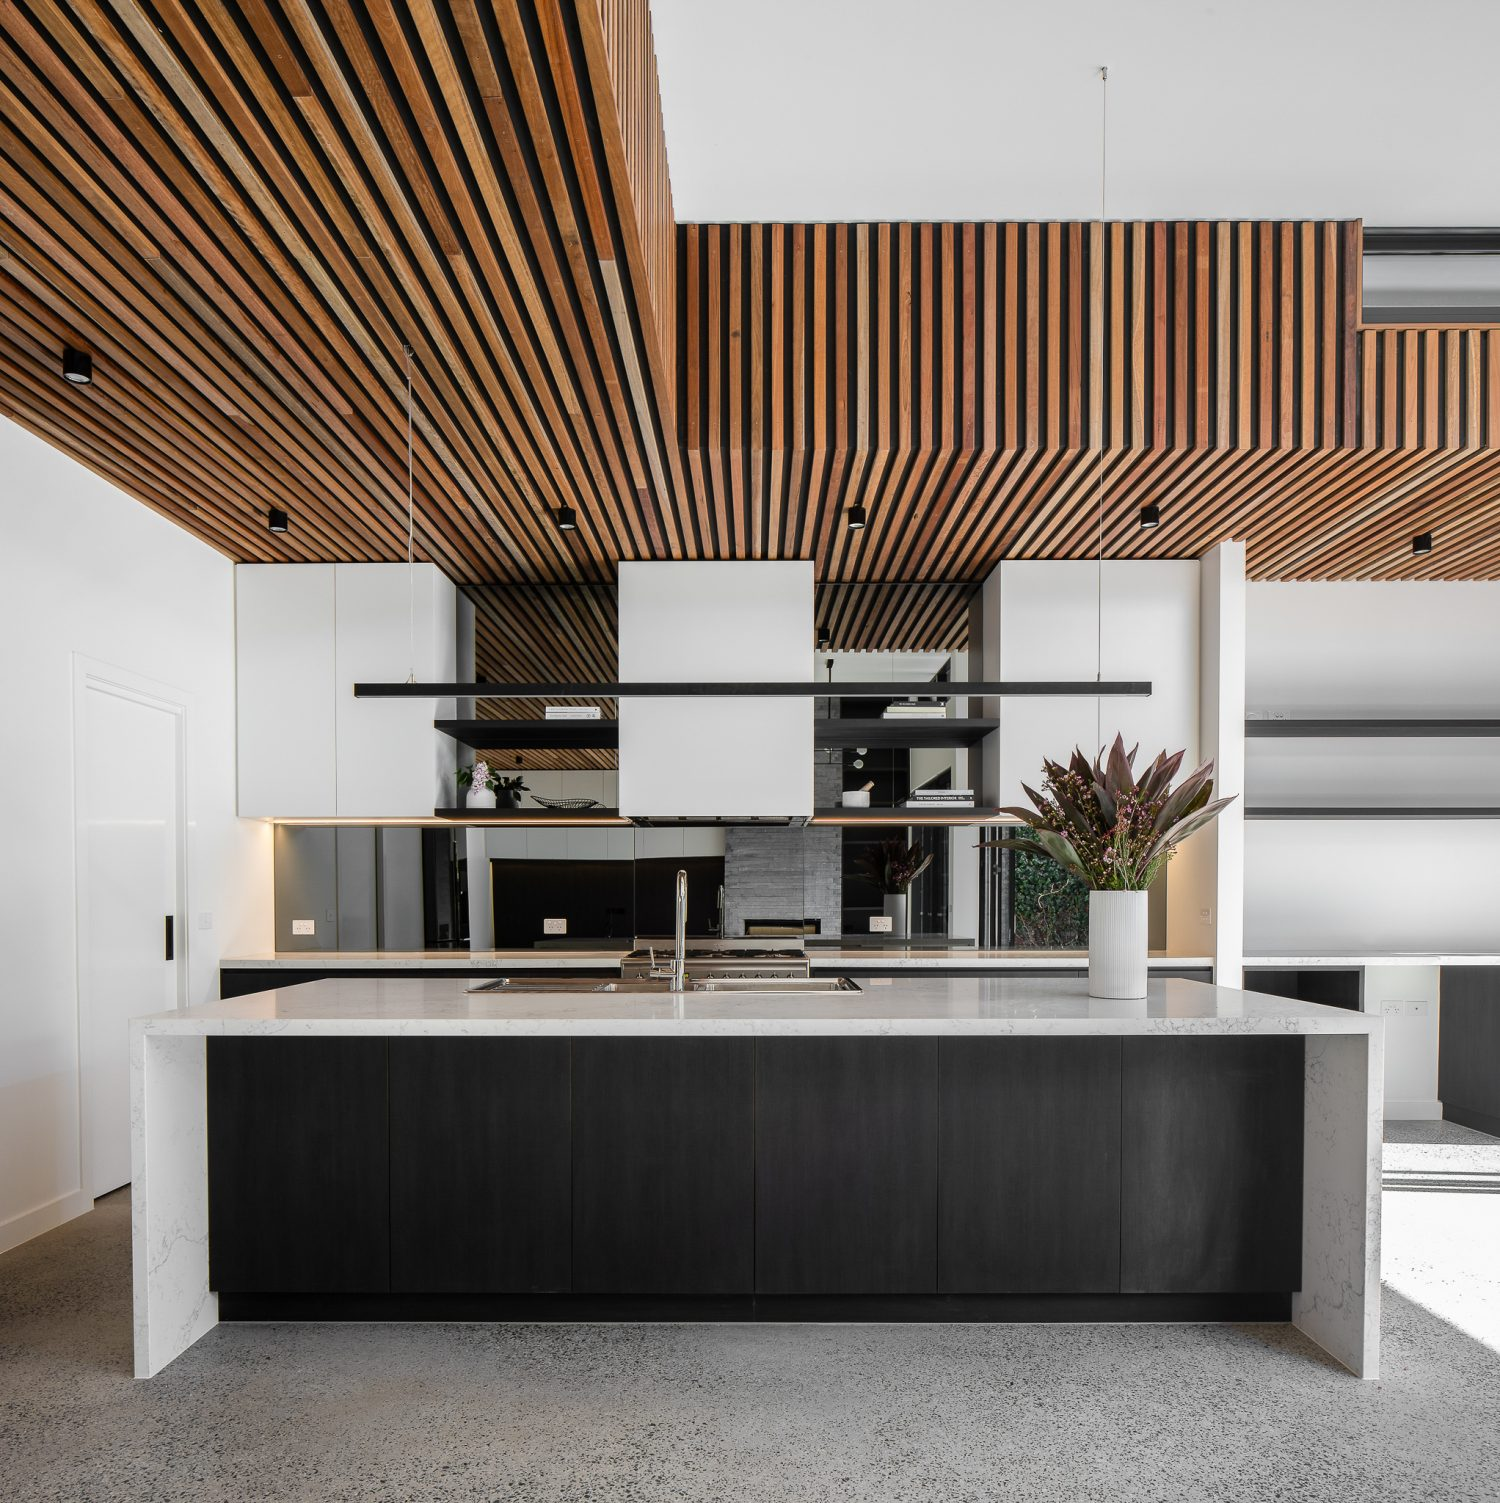 Modern Kitchen Design With Timber Feature